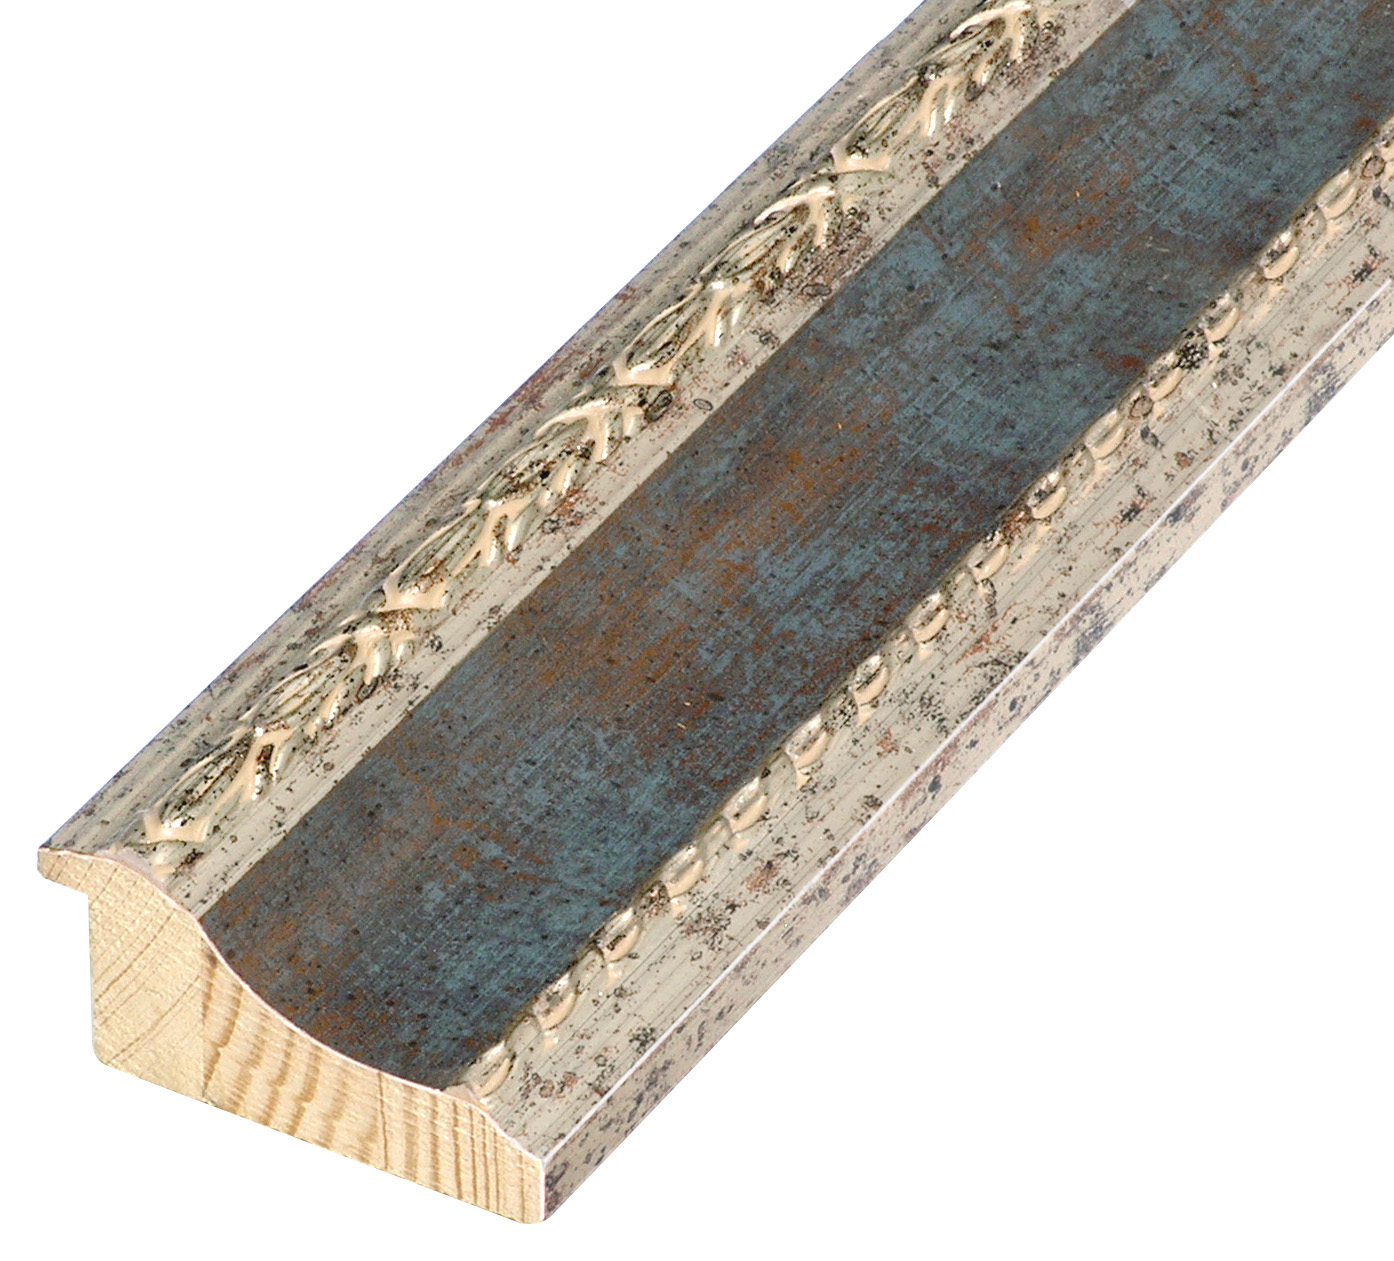 Moulding finger joint pine, width 68mm - silver, blue band, decorations band, decorations